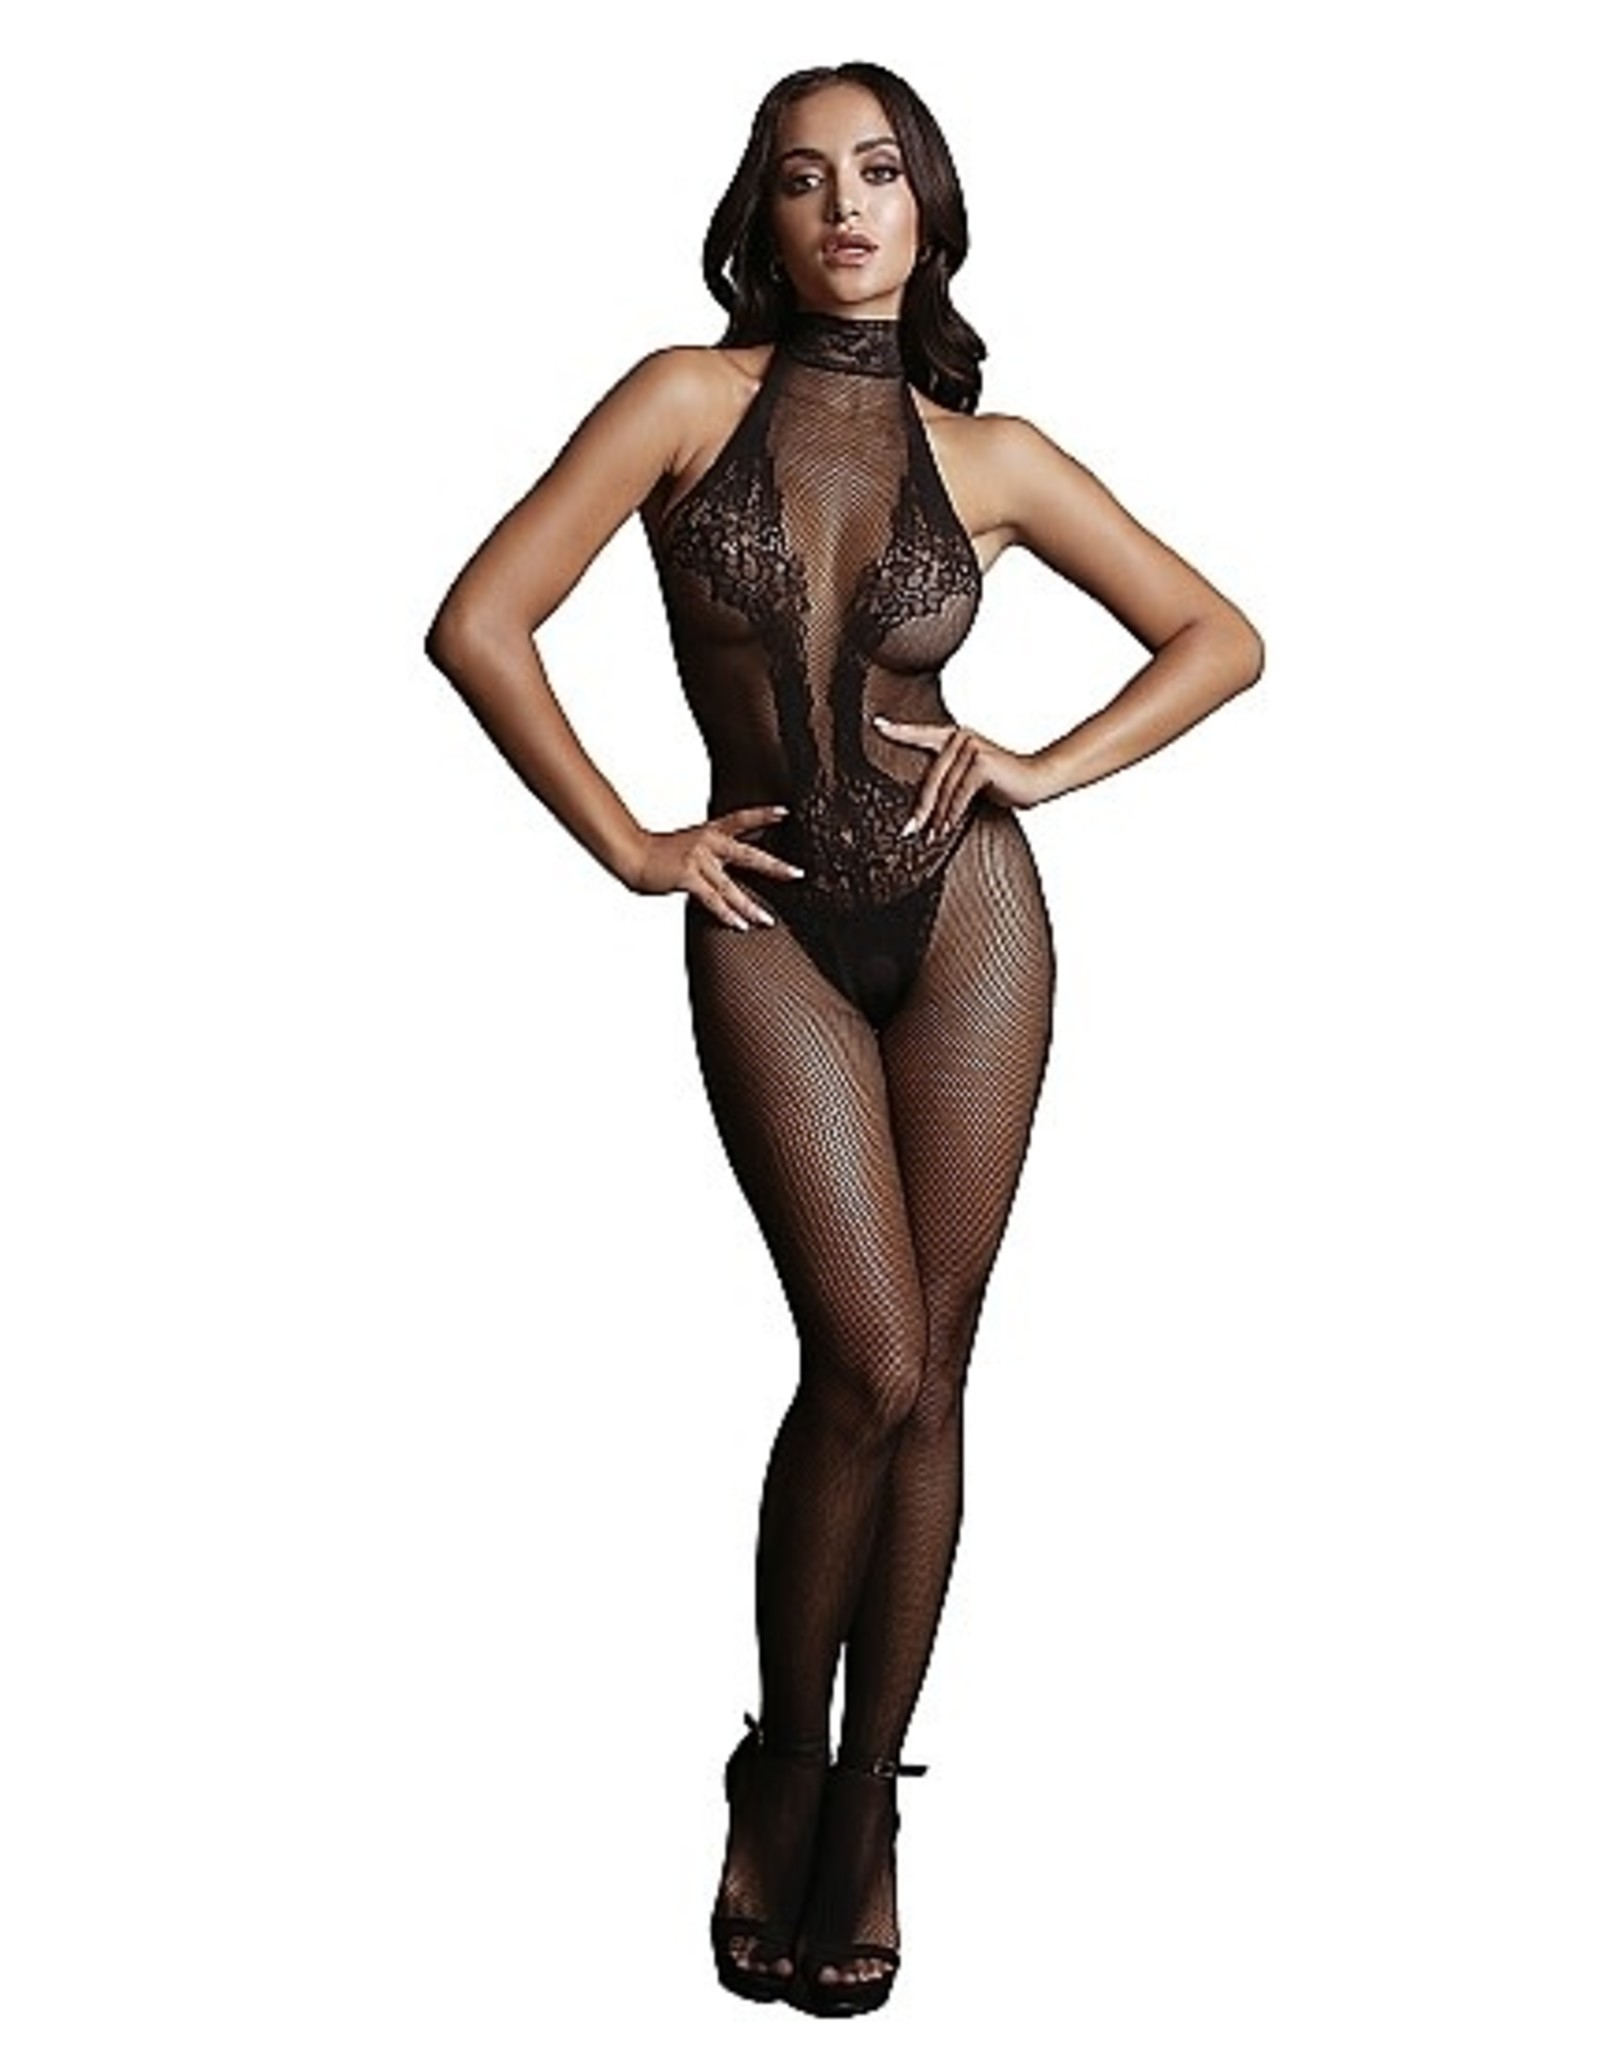 LE DESIR LE DESIR - FISHNET AND LACE BODYSTOCKING BLACK ONE SIZE